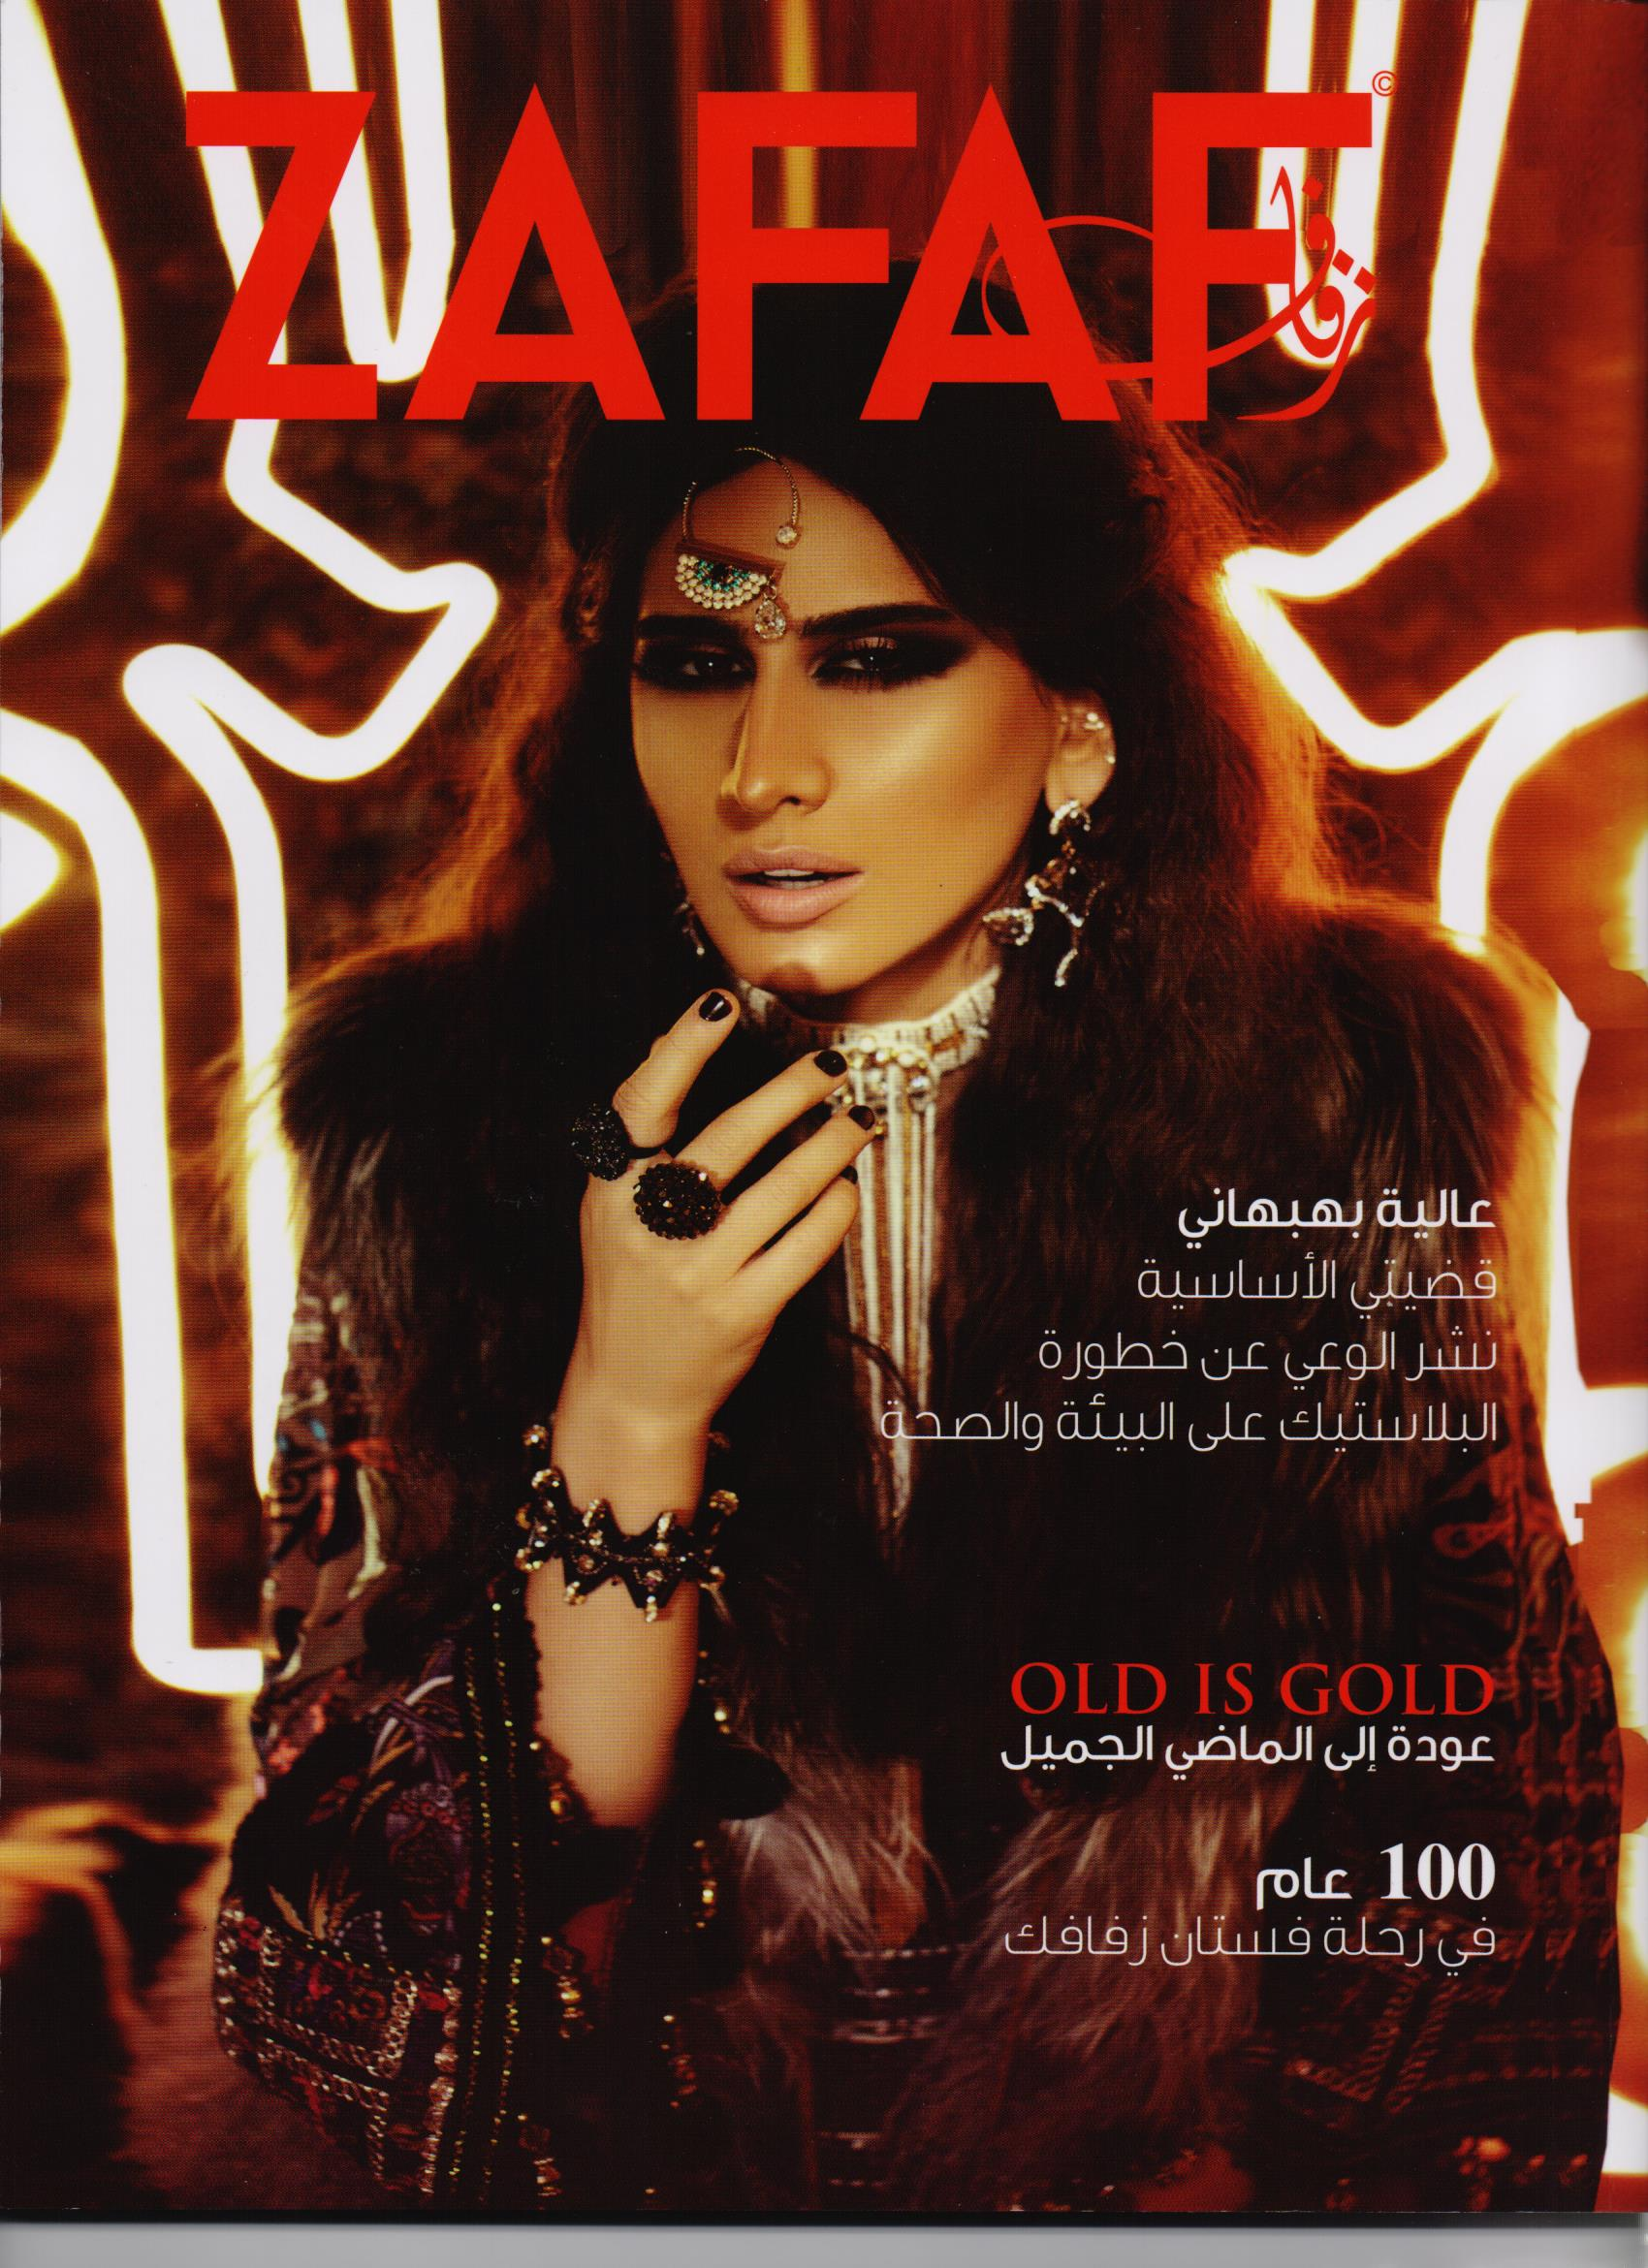 ZAFAF MAGAZINE COVER PAGE